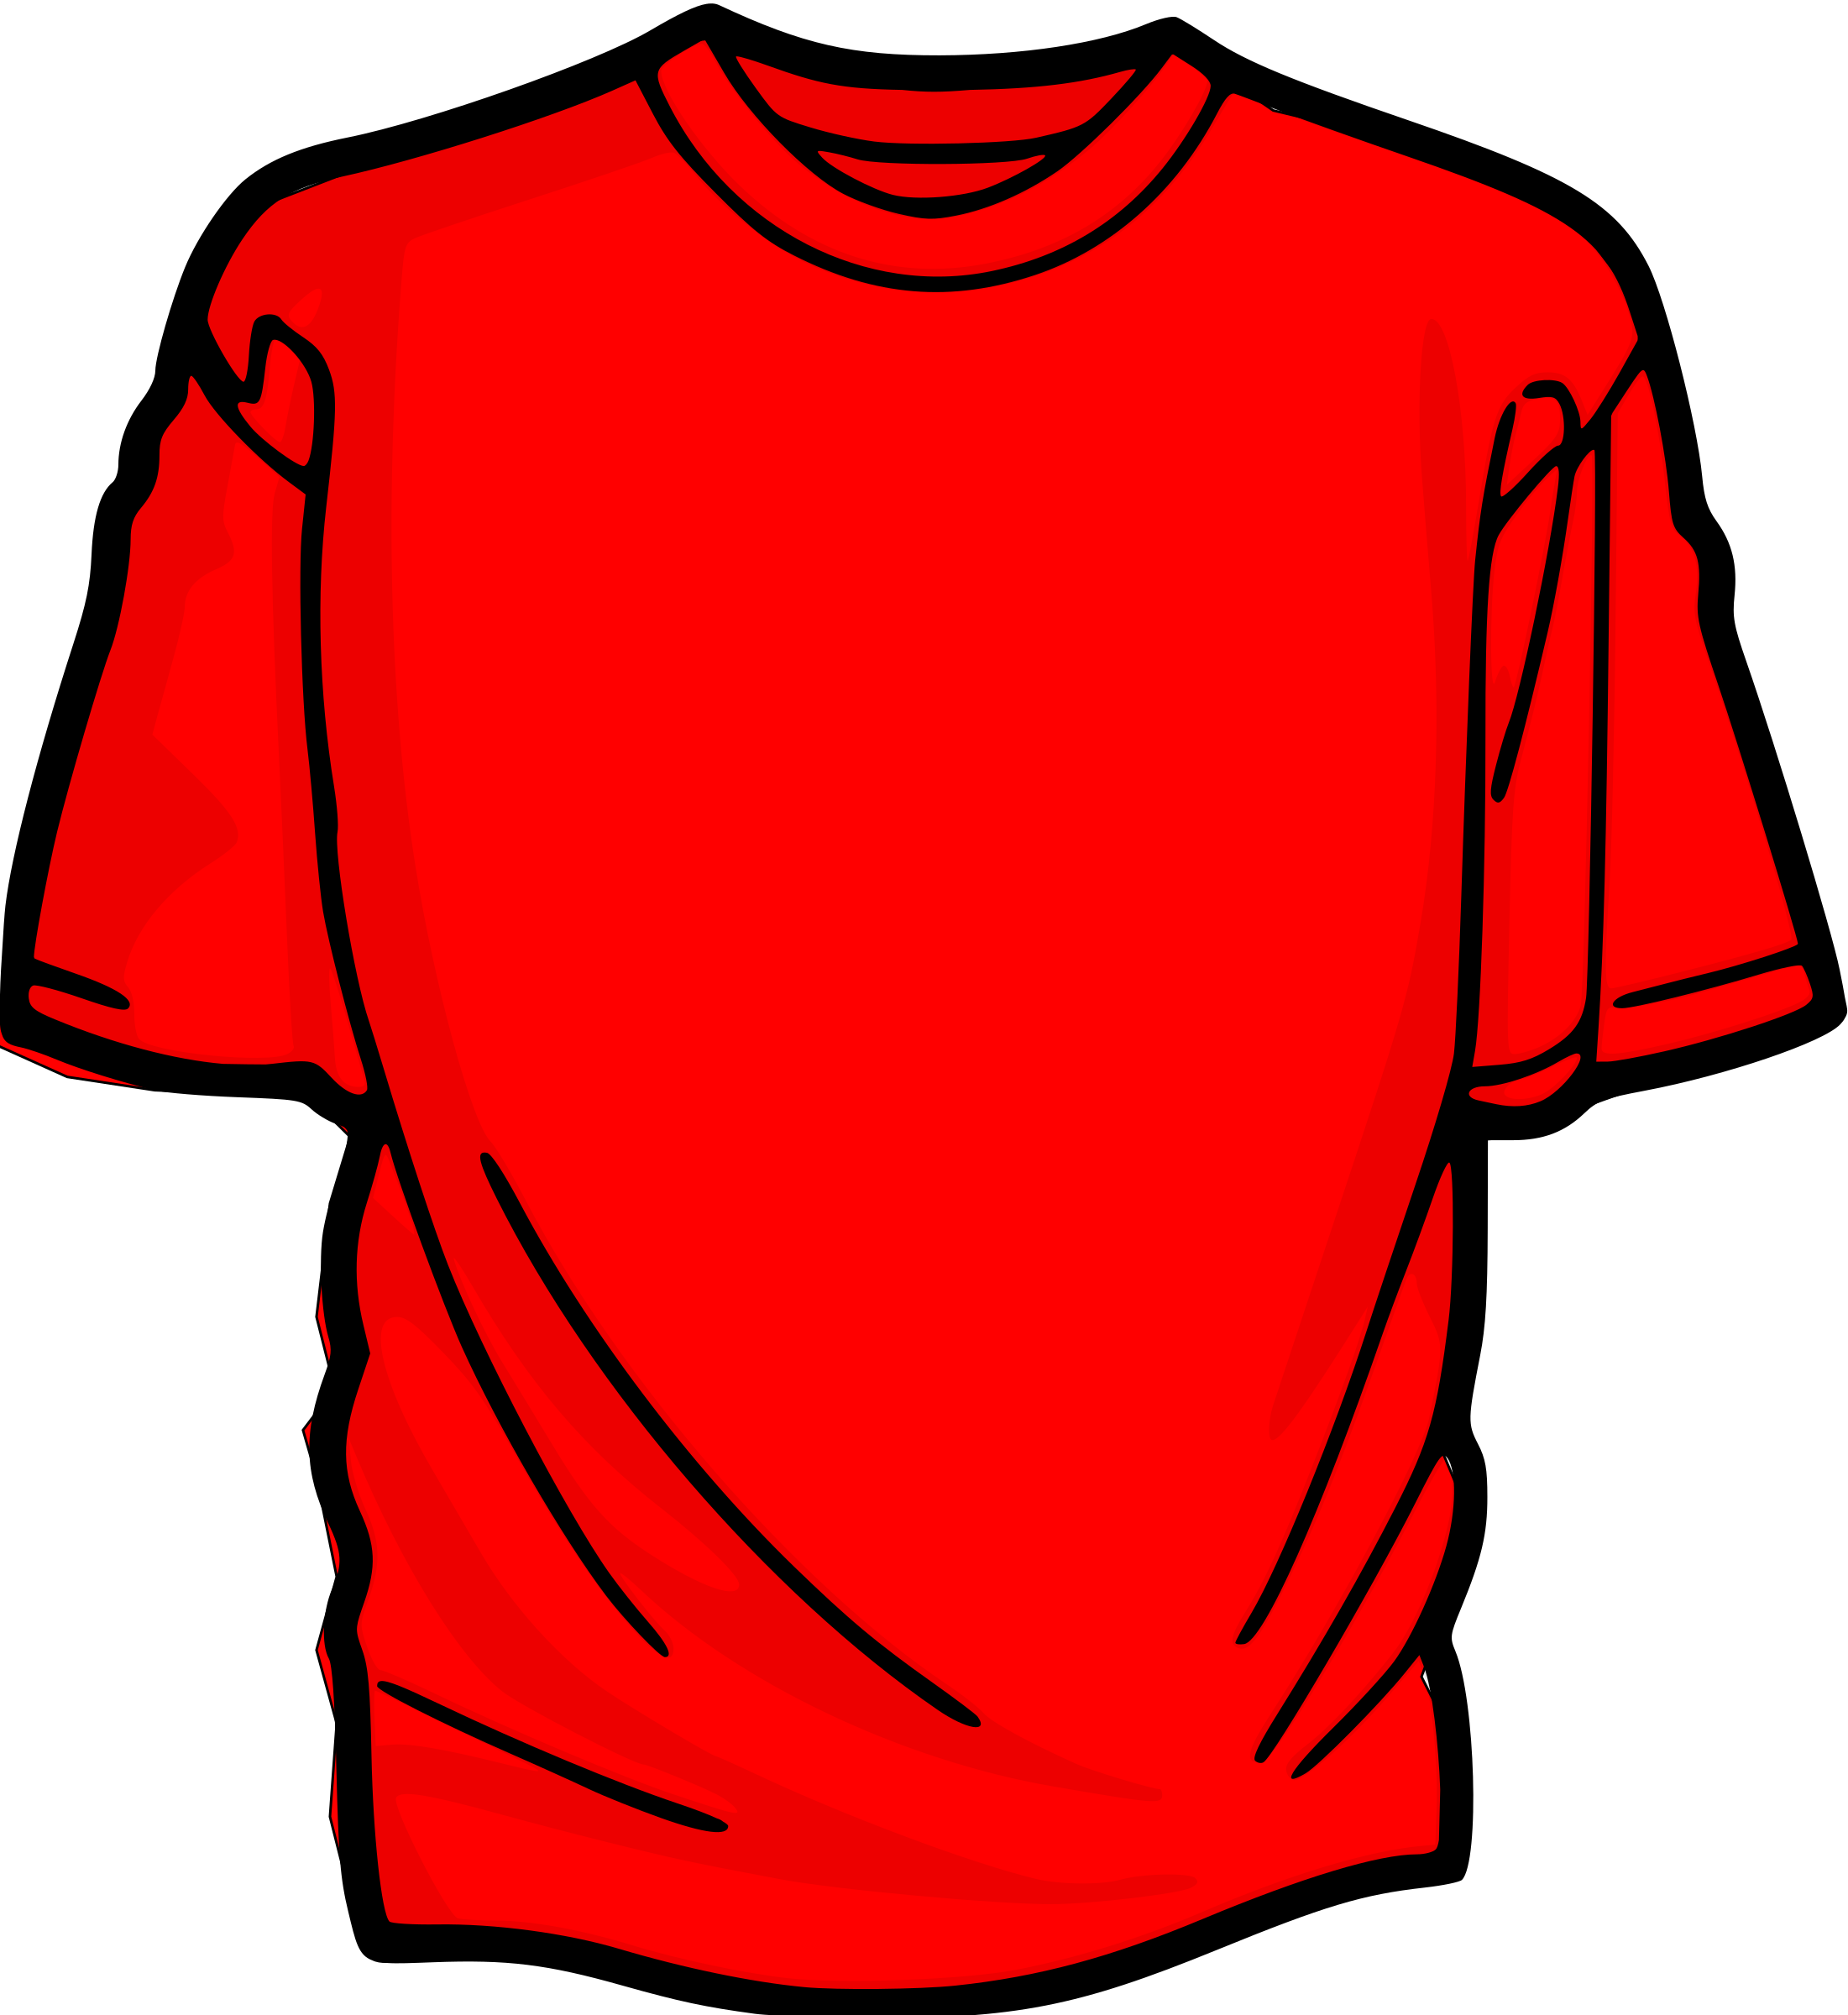 Shirts clipart animated.